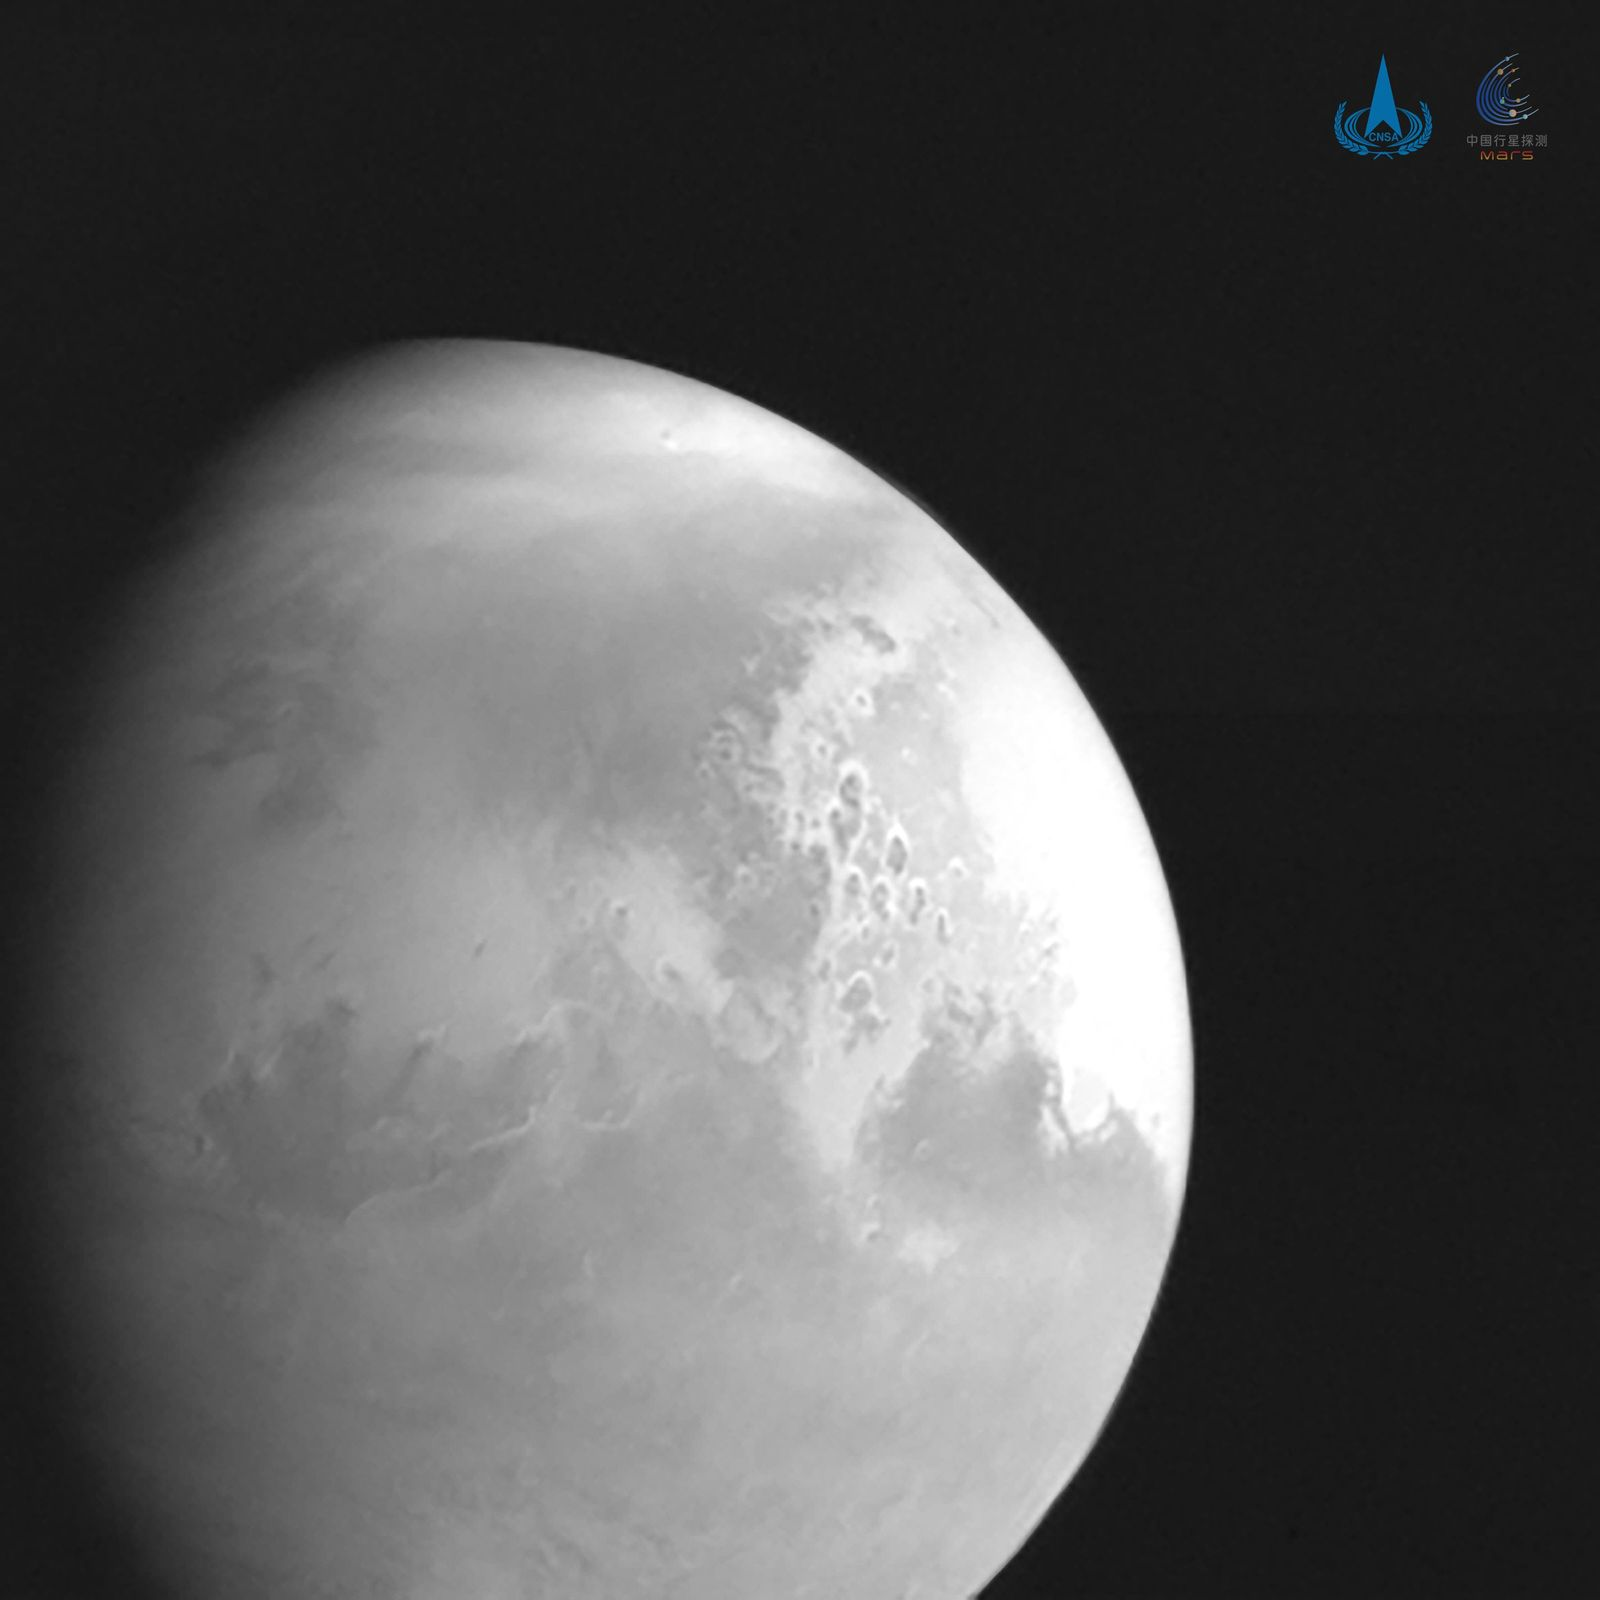 First image of Mars taken by China's Tianwen-1 unmanned probe - 05 Feb 2021